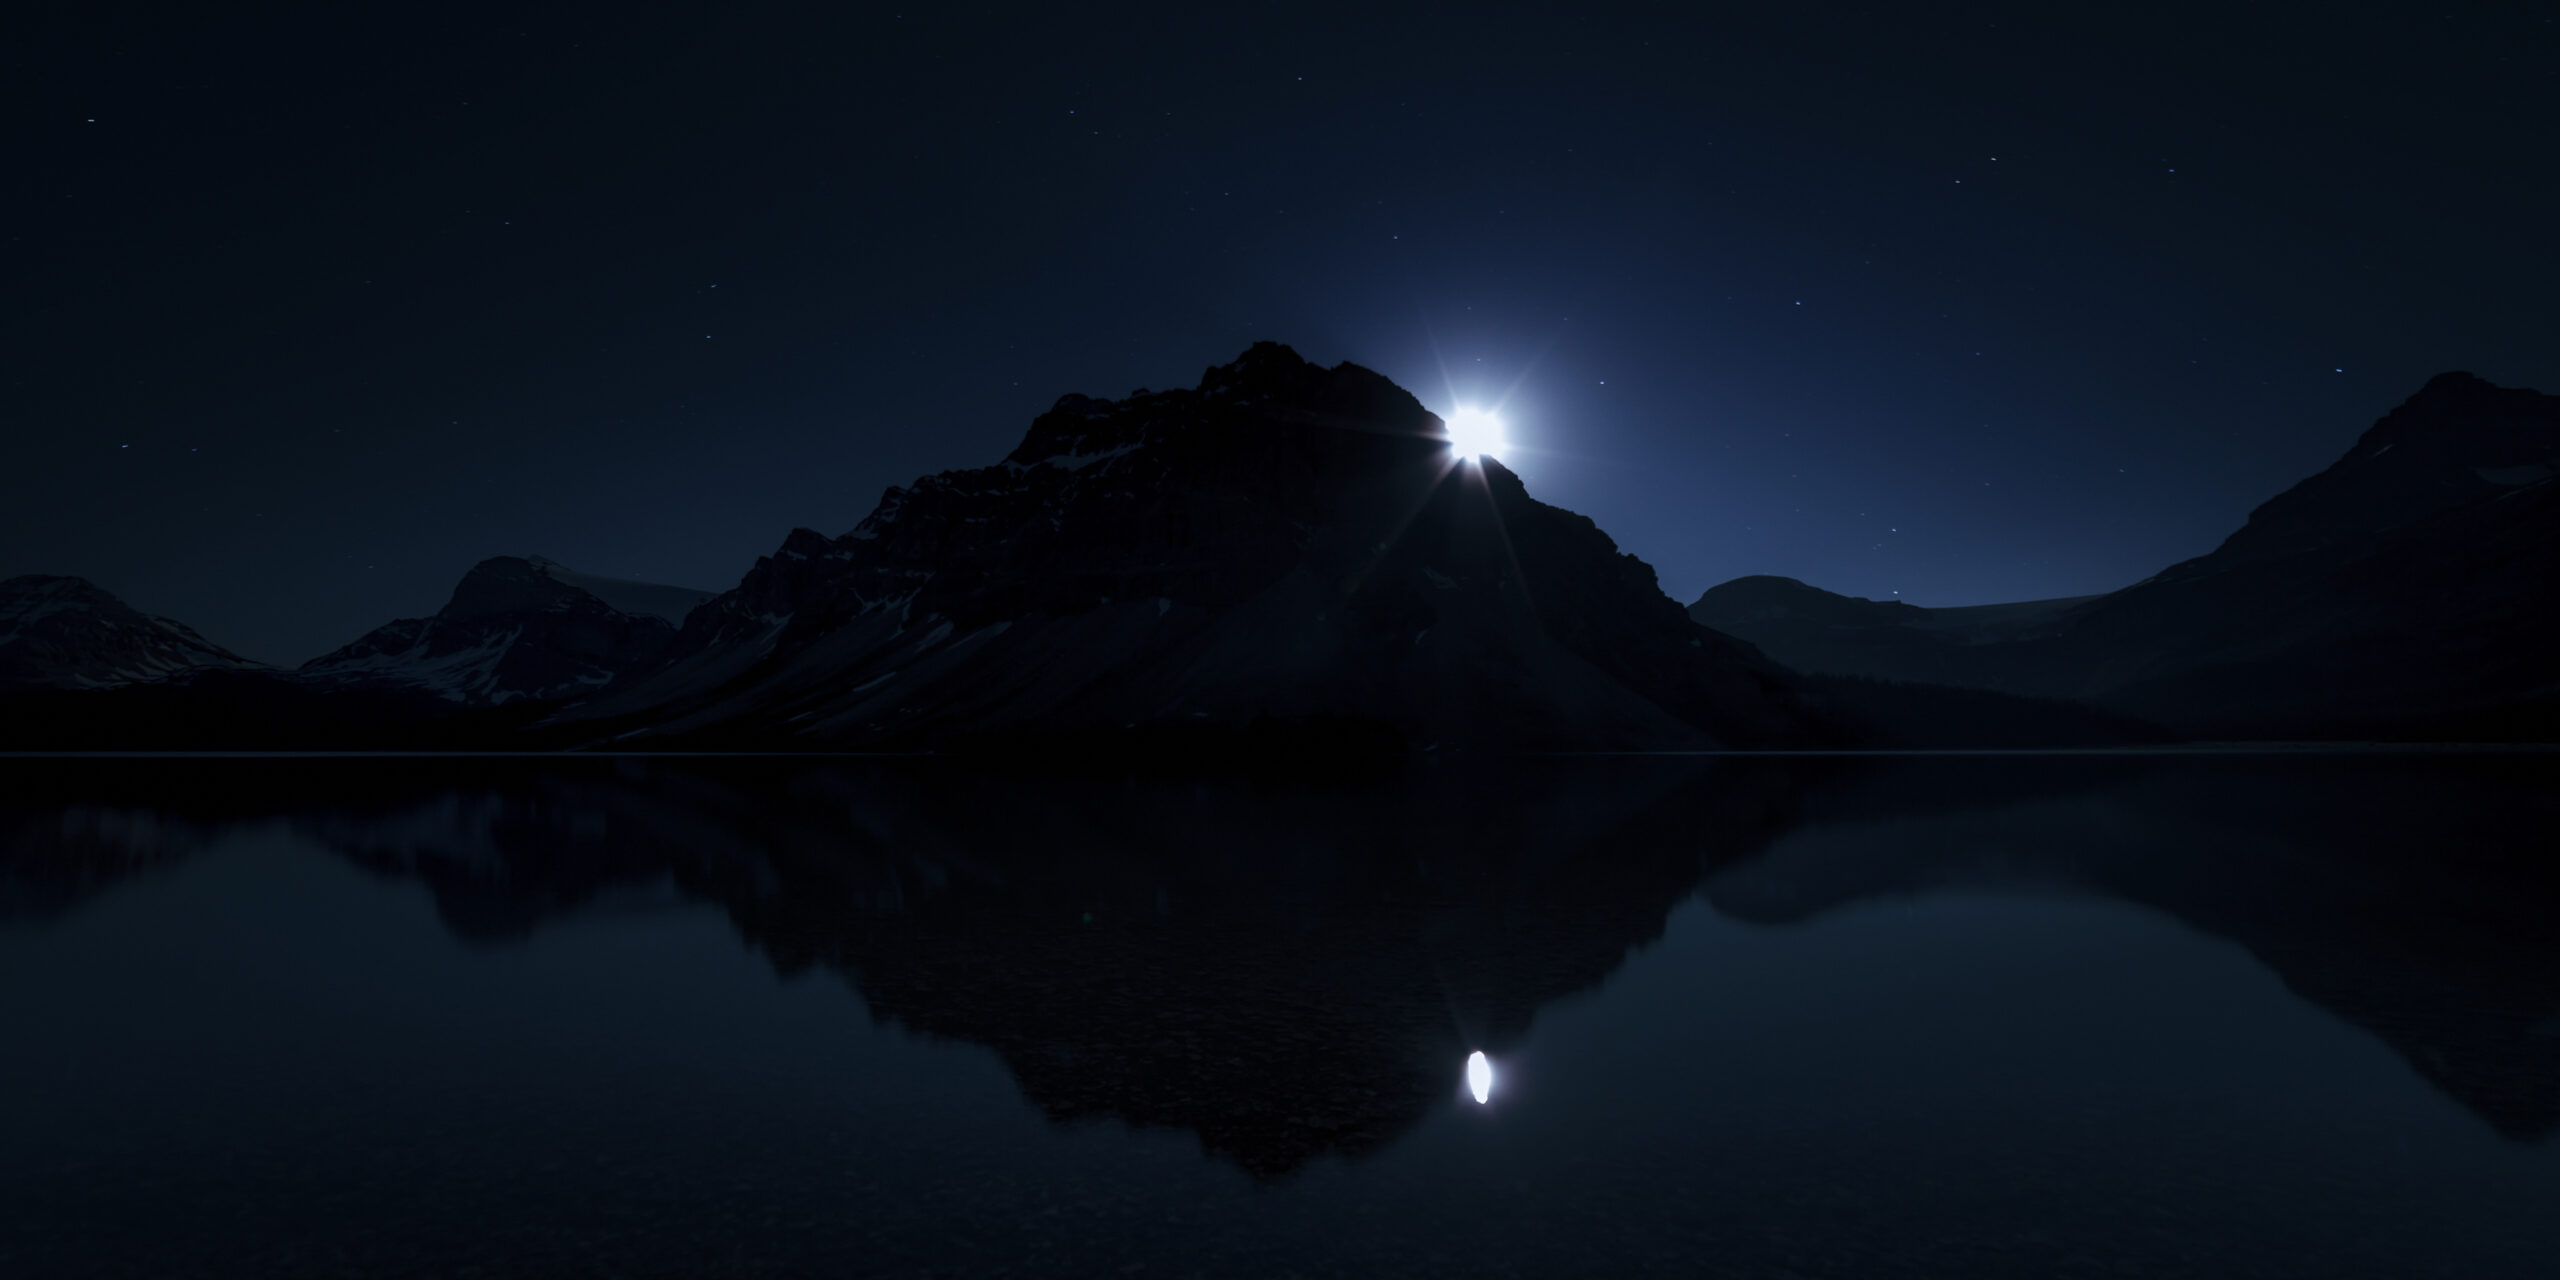 Full Moon rises at glacier lake behind the silhouette mountains